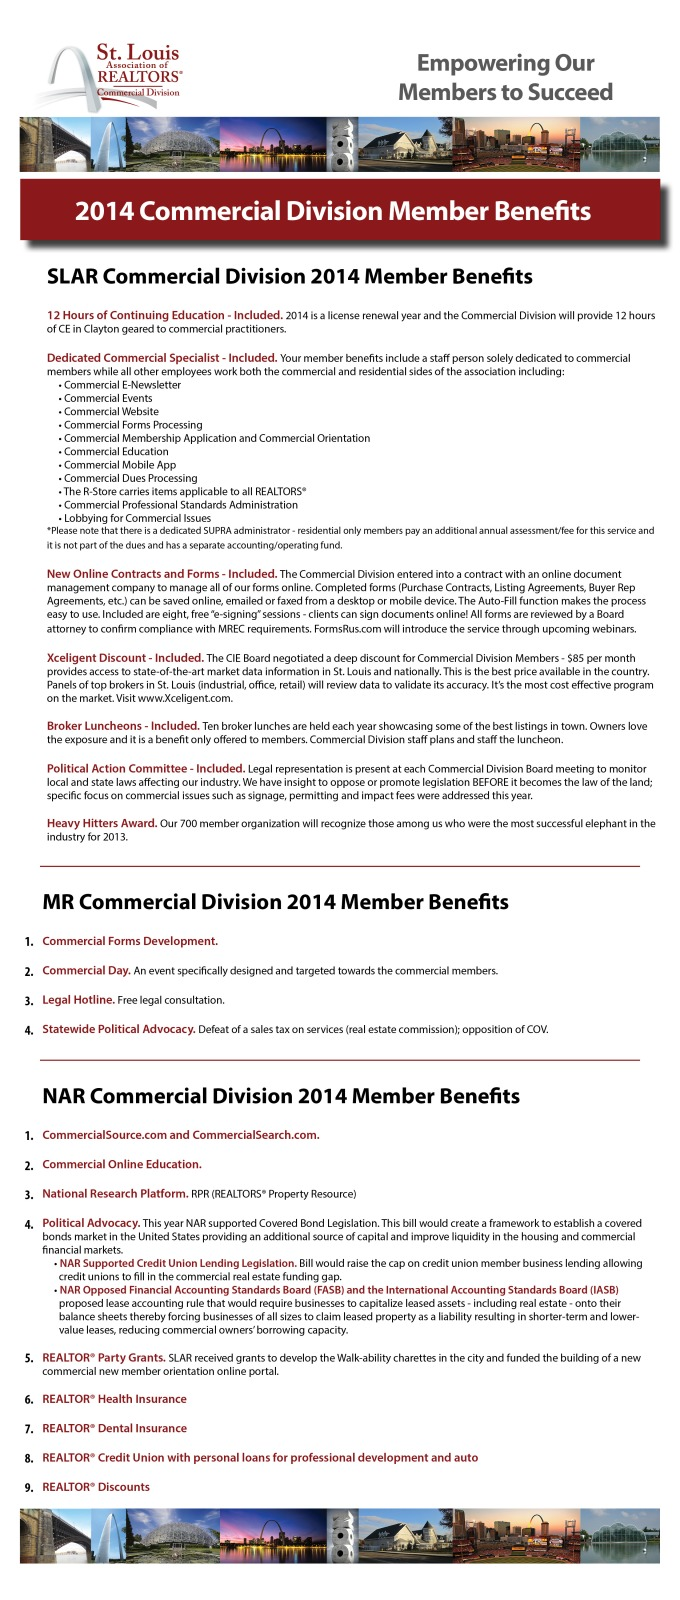 Member Benefits Statement